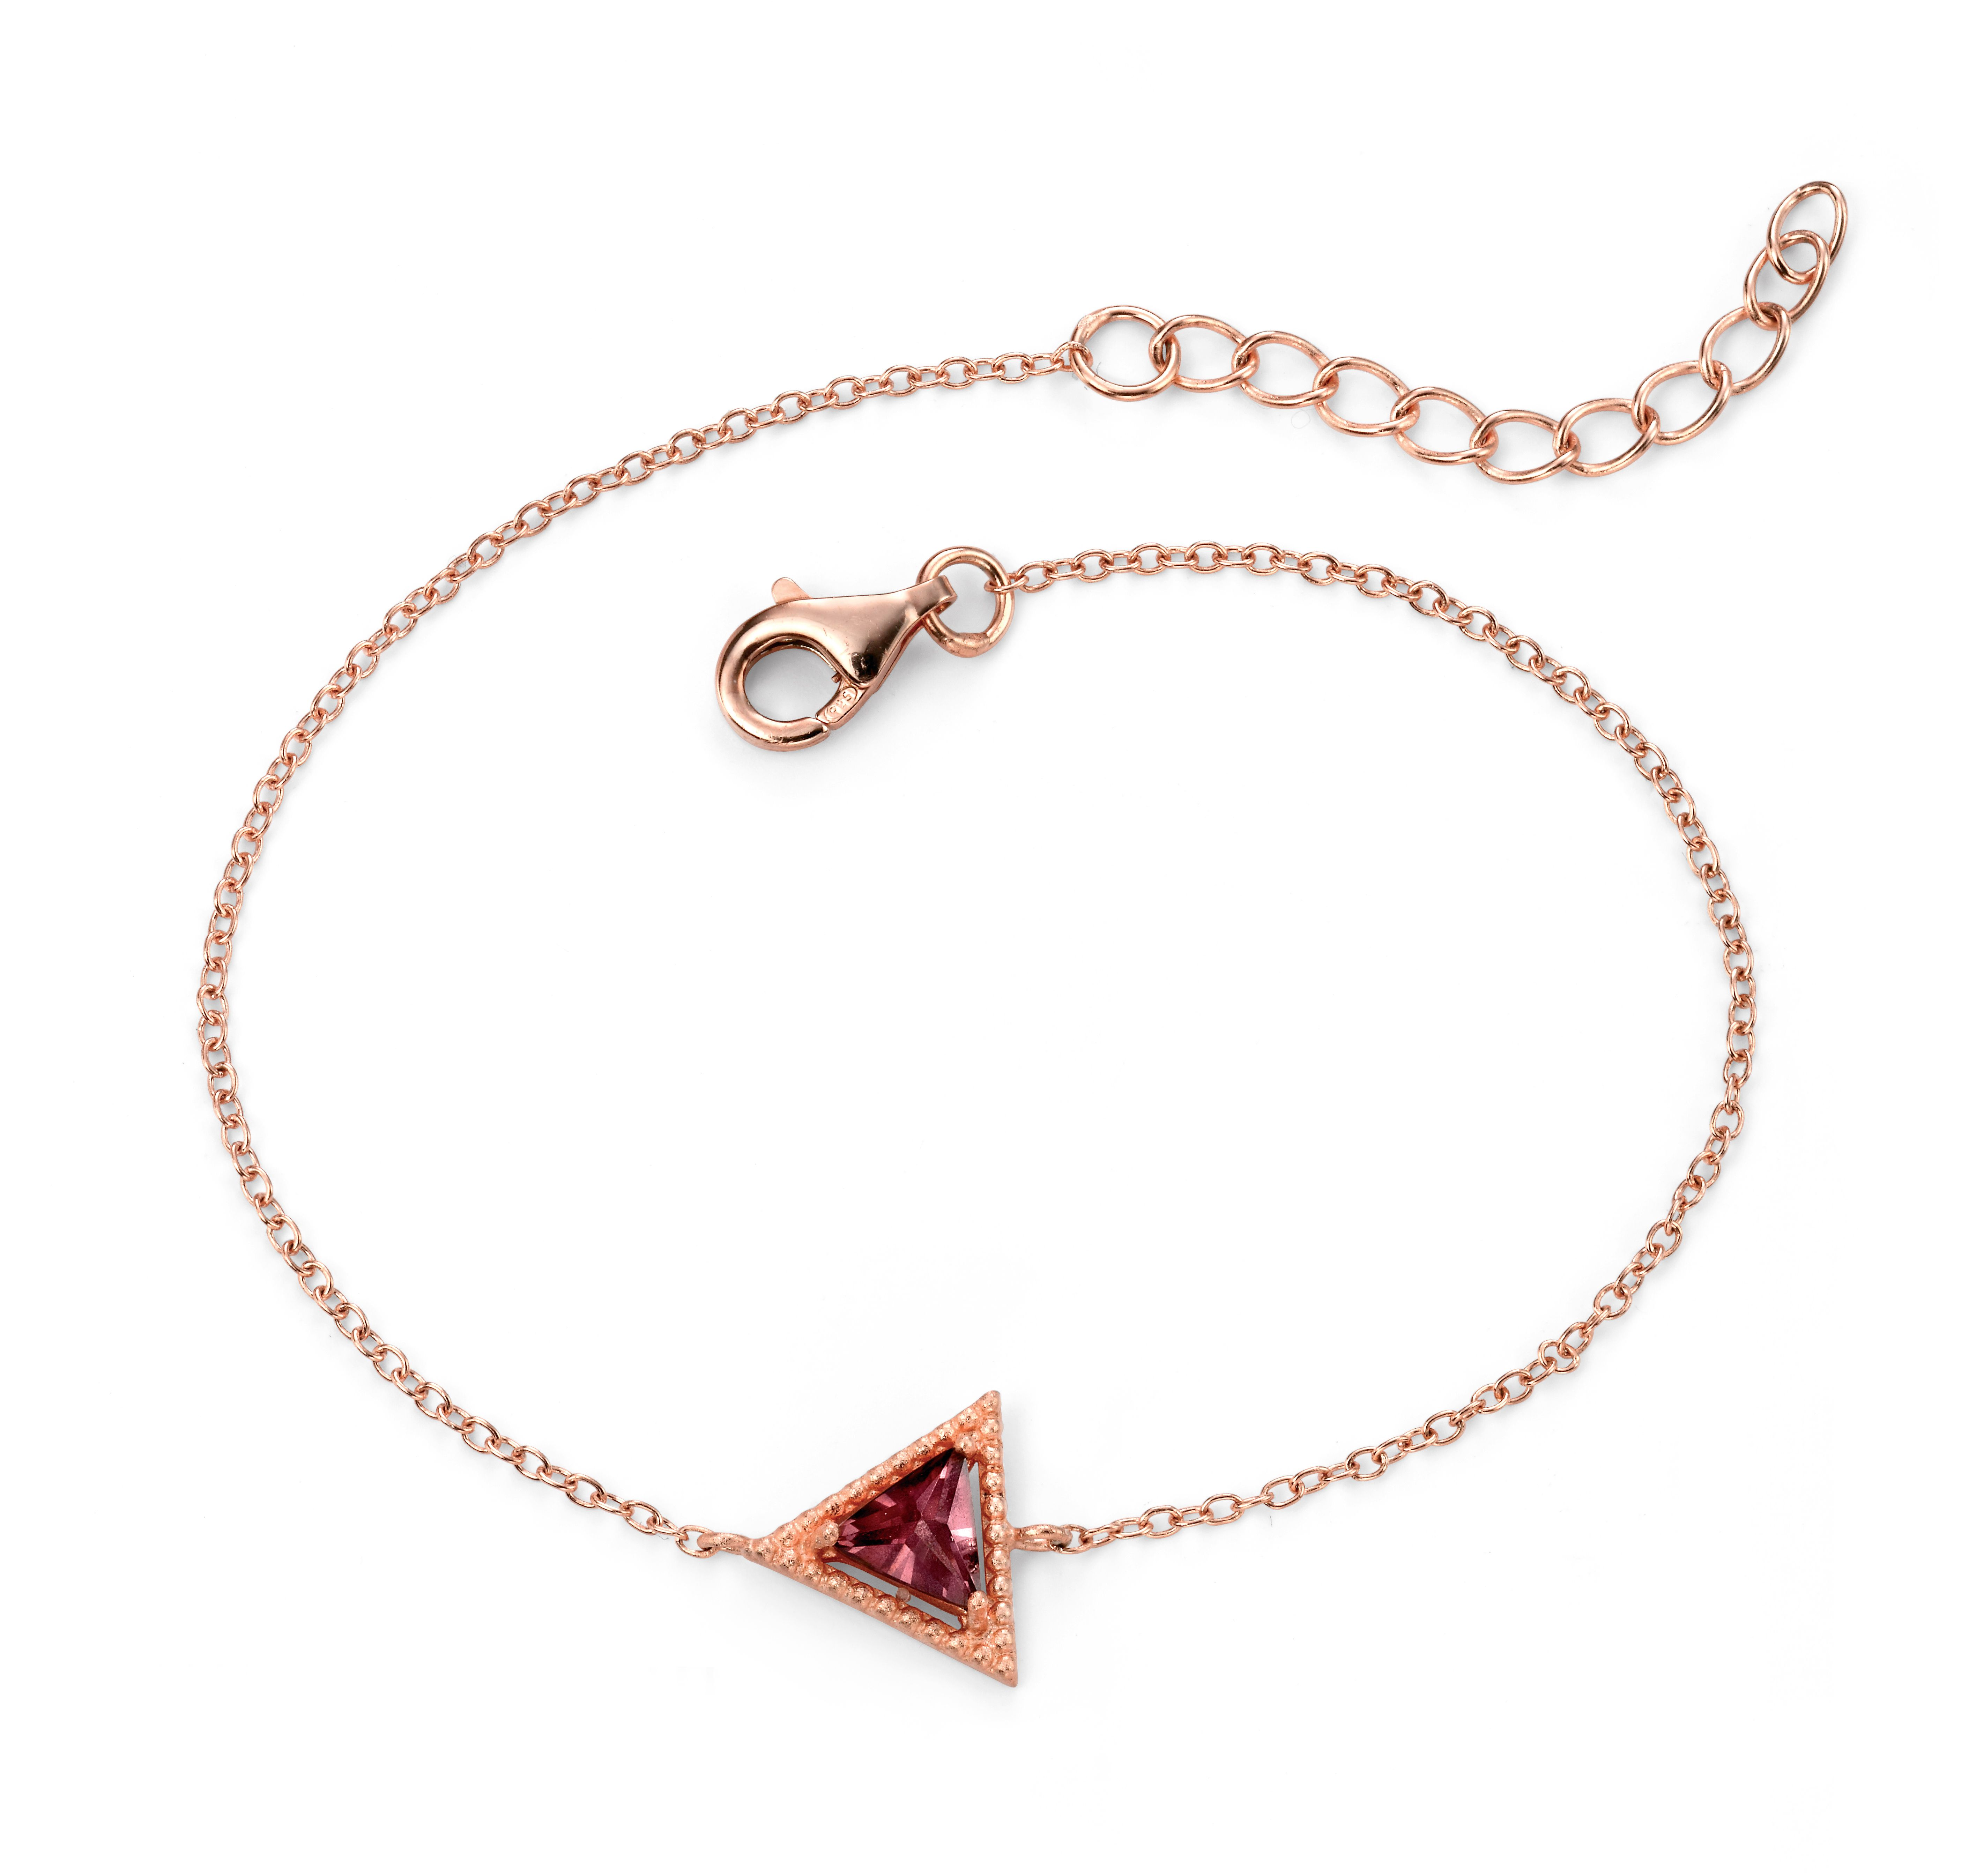 Elements Silver Womens 925 Sterling Silver Rose Gold Plated Purple Cubic Zirconia Triangle Bracelet of Length 17-20cm